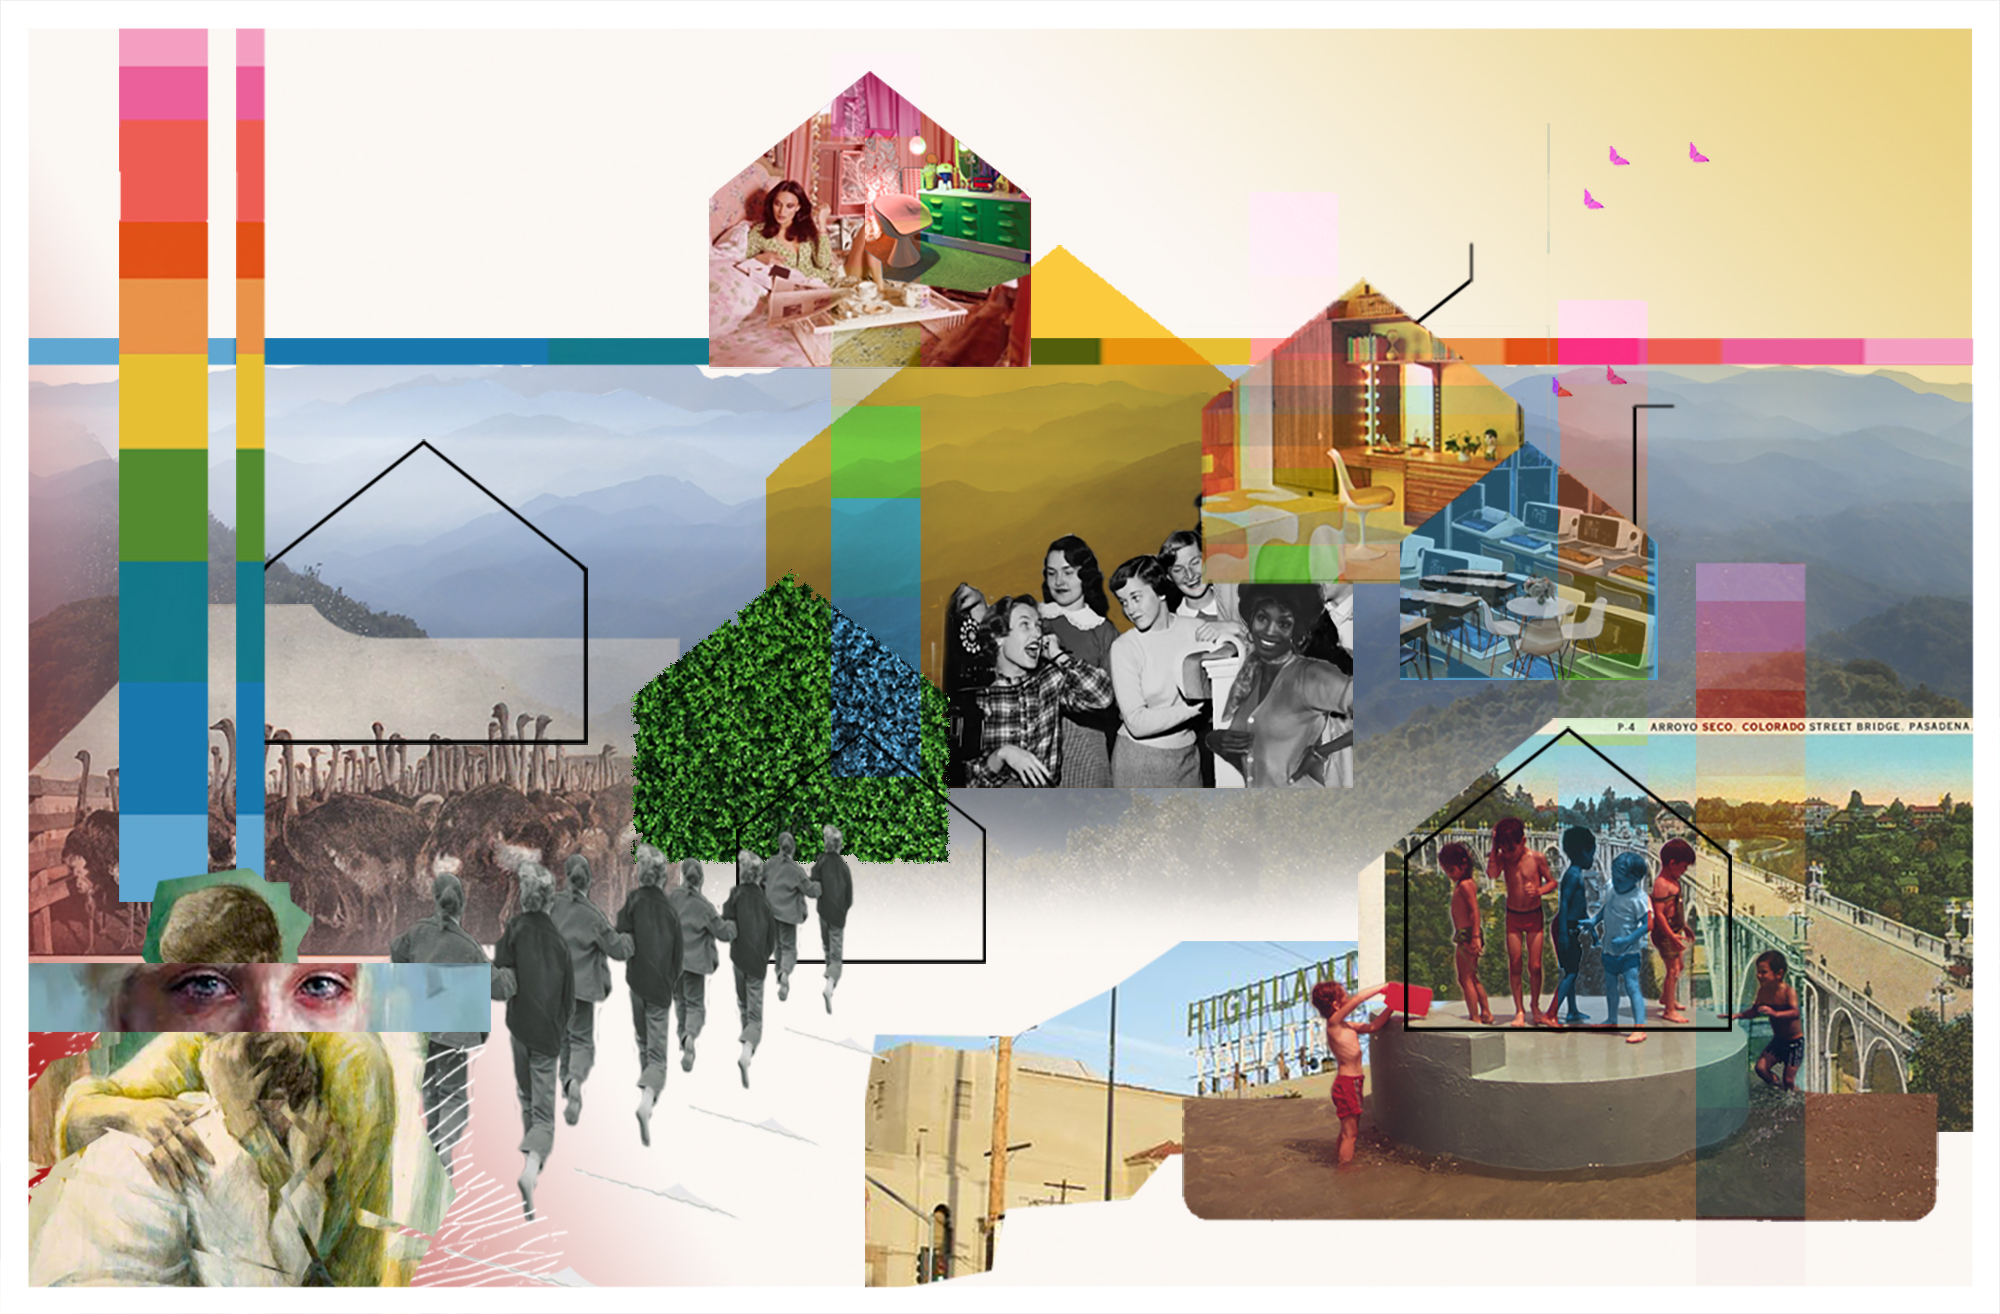 Primary Image option 2 Conceptual Collage